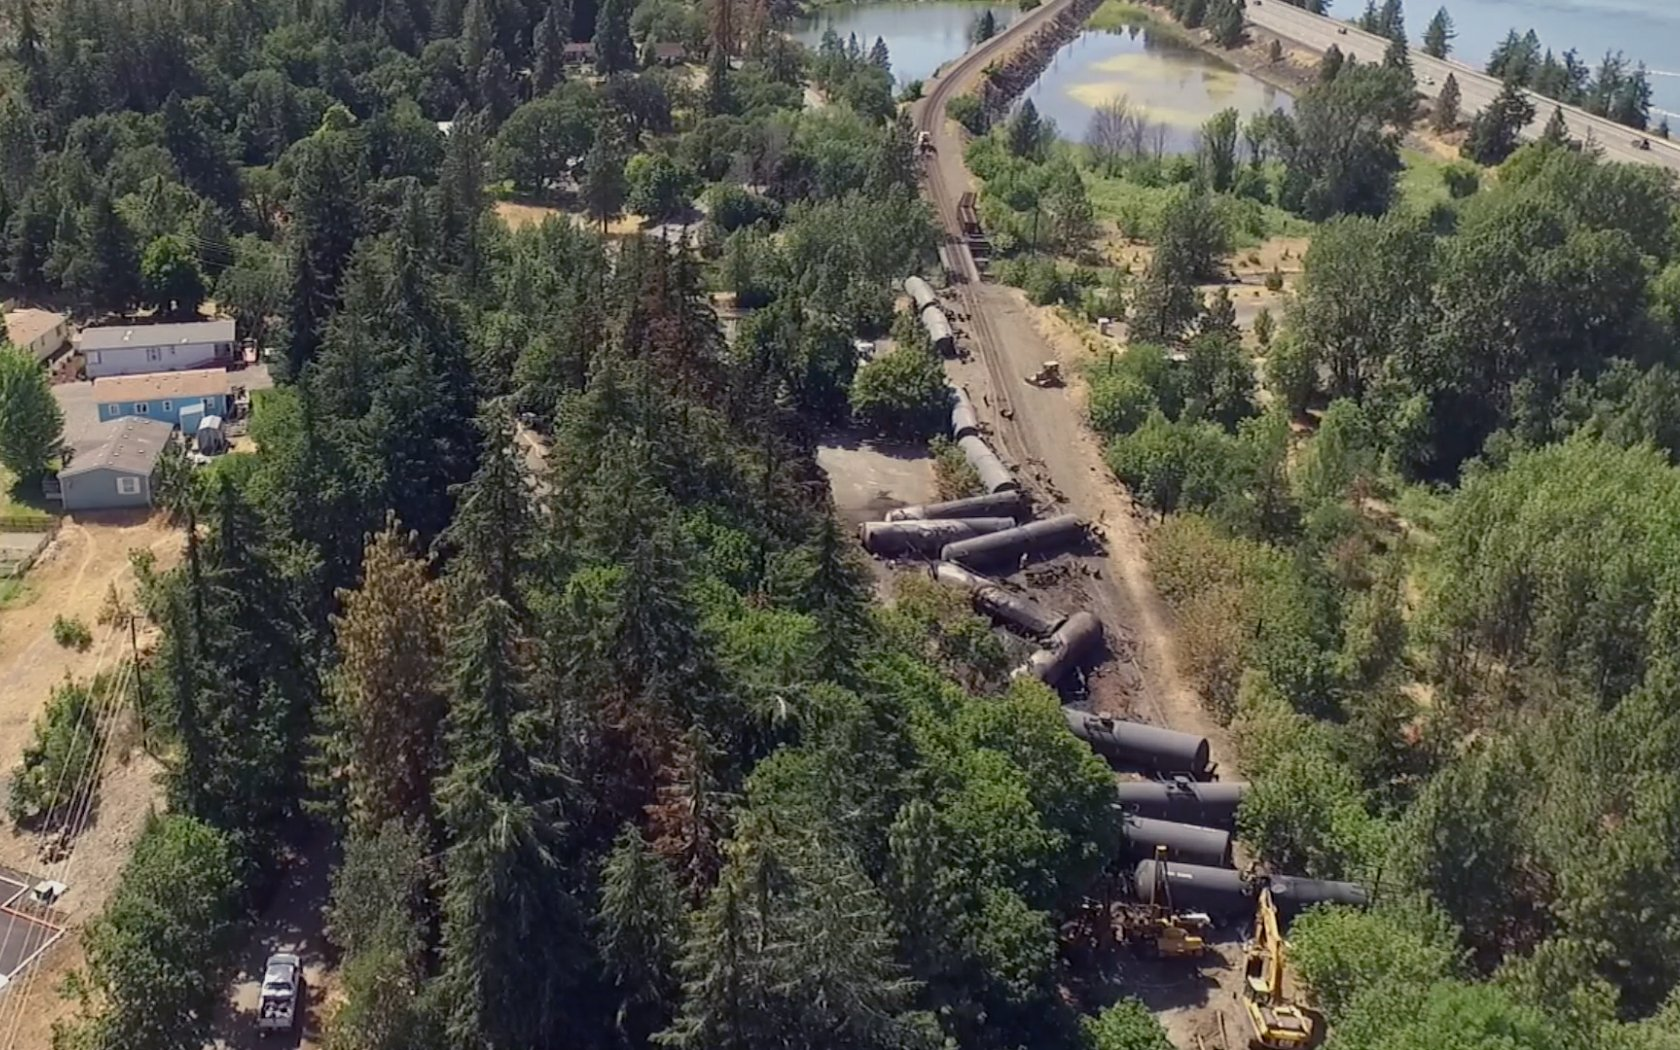 Oil Tankers derailed in Mosier, Oregon. Photo credit:Associated Press/Brent Foster